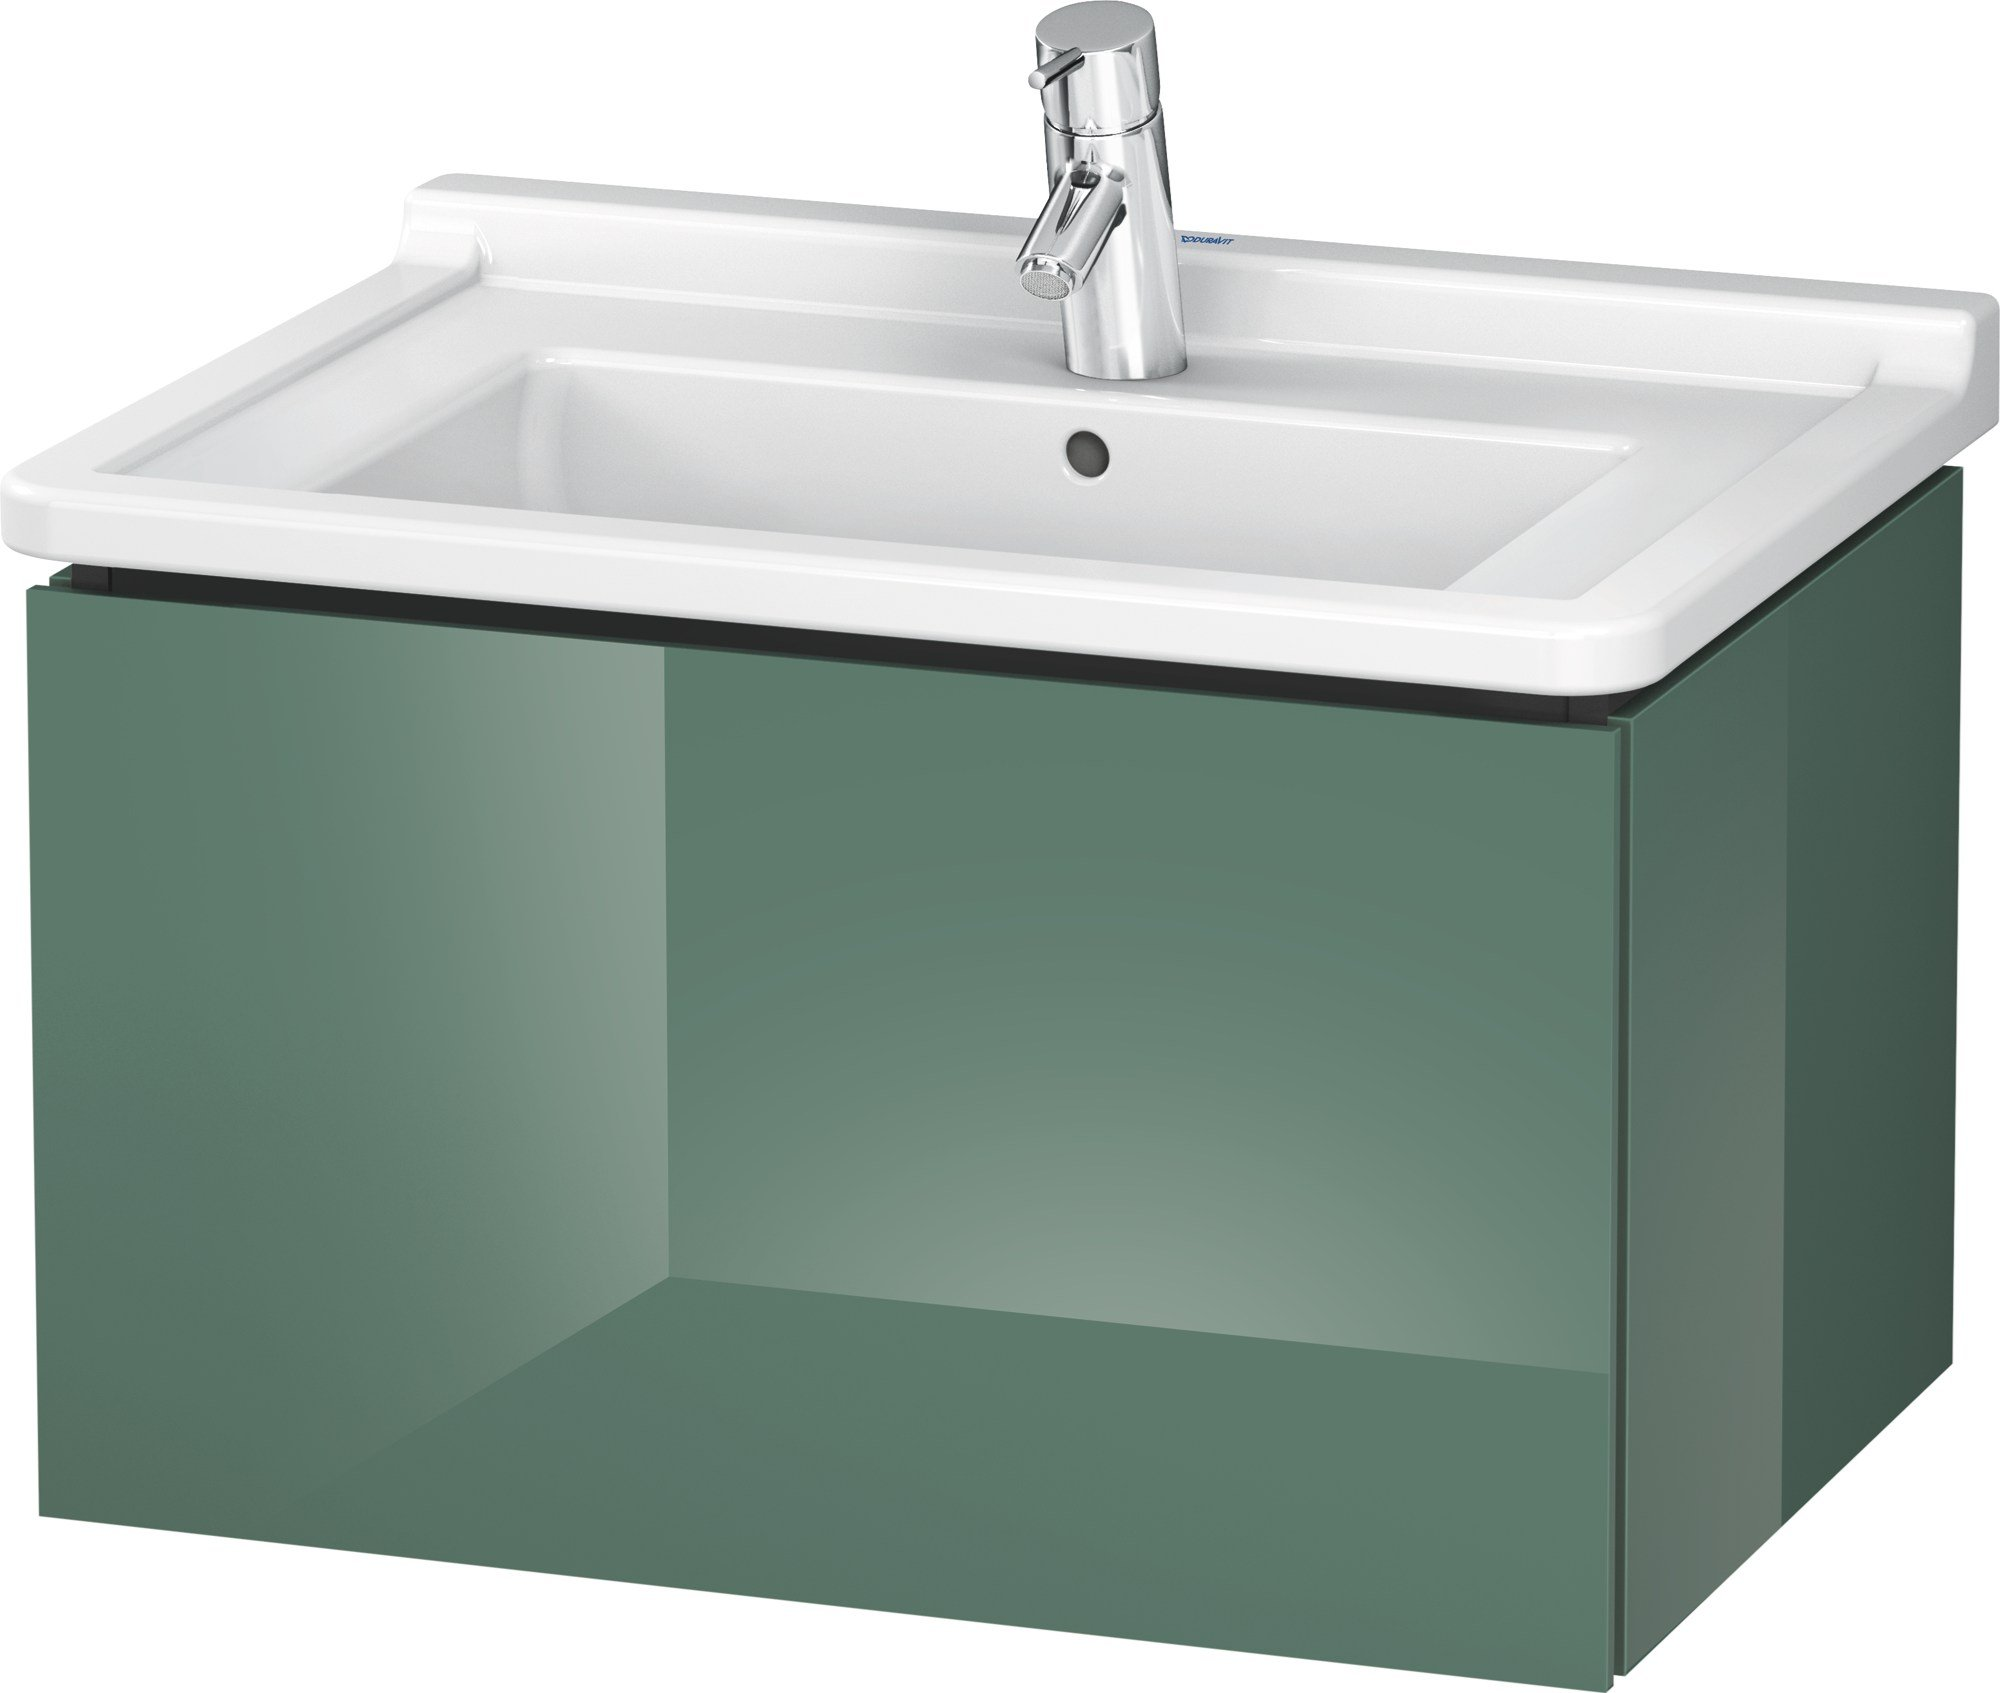 Lc 6164 meuble sous vasque by duravit design christian werner for Meuble mural a tiroirs